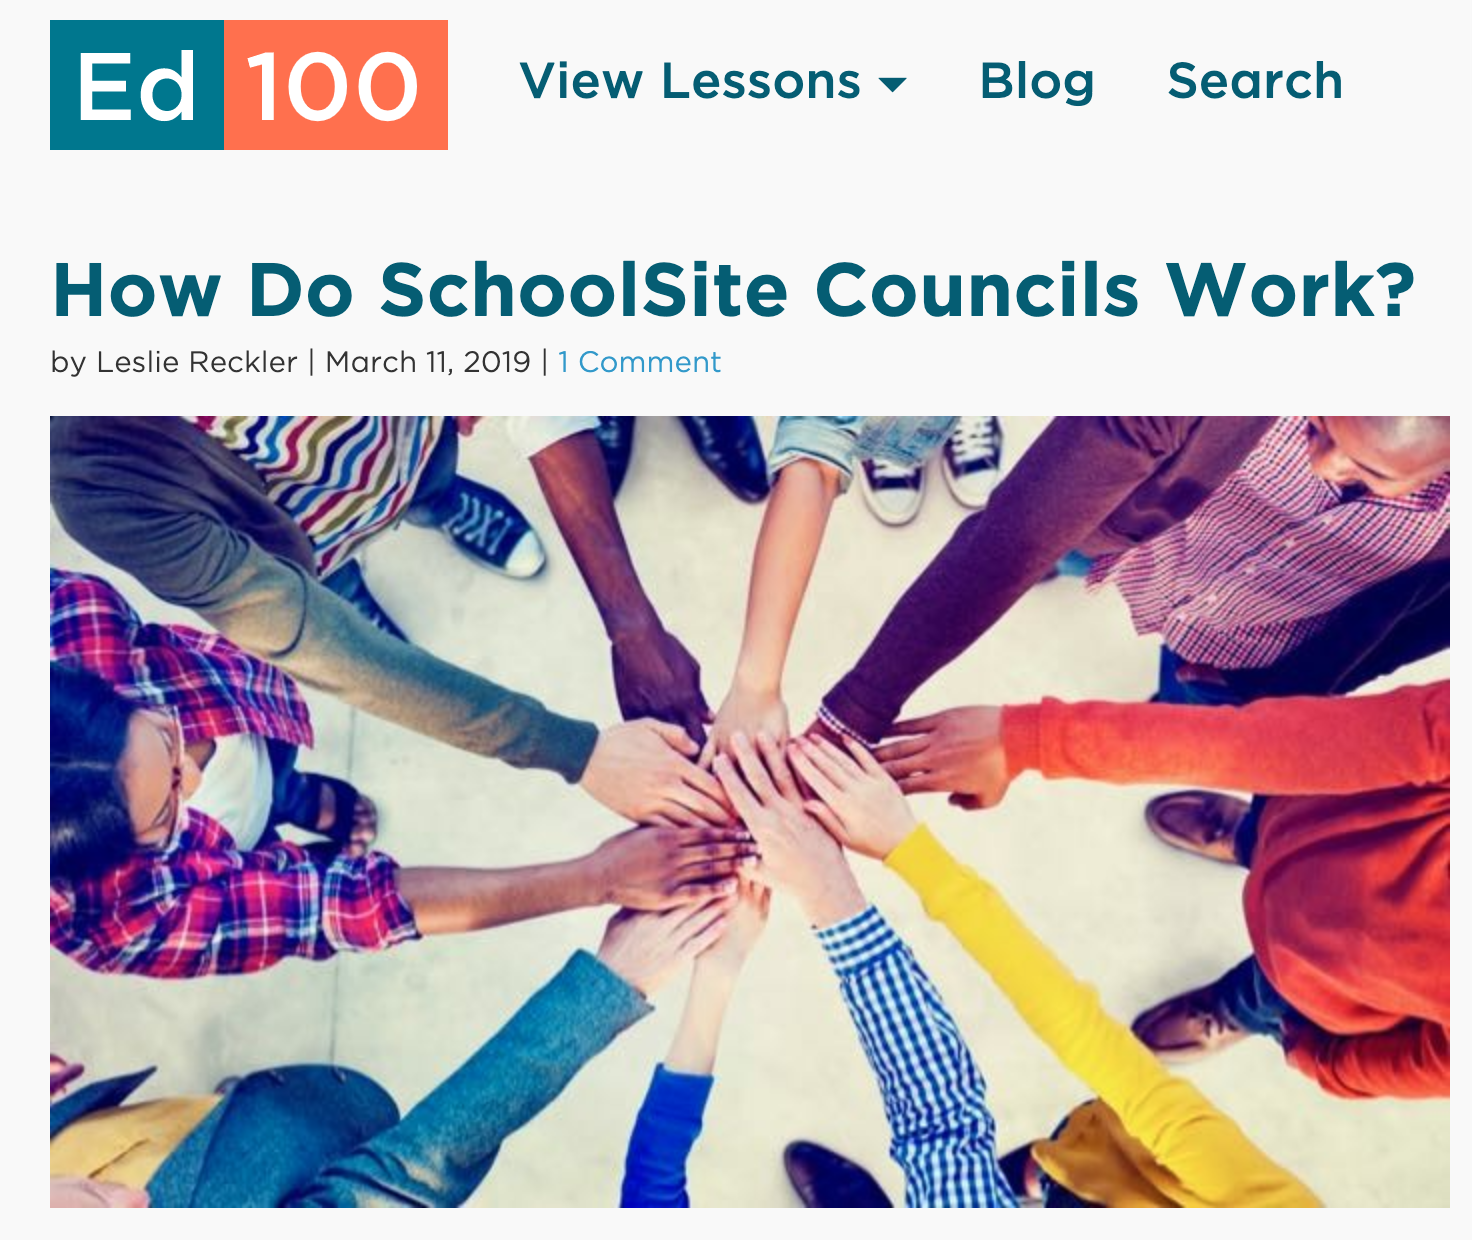 View this ed100.org lesson:  https://ed100.org/blog/school-site-councils .